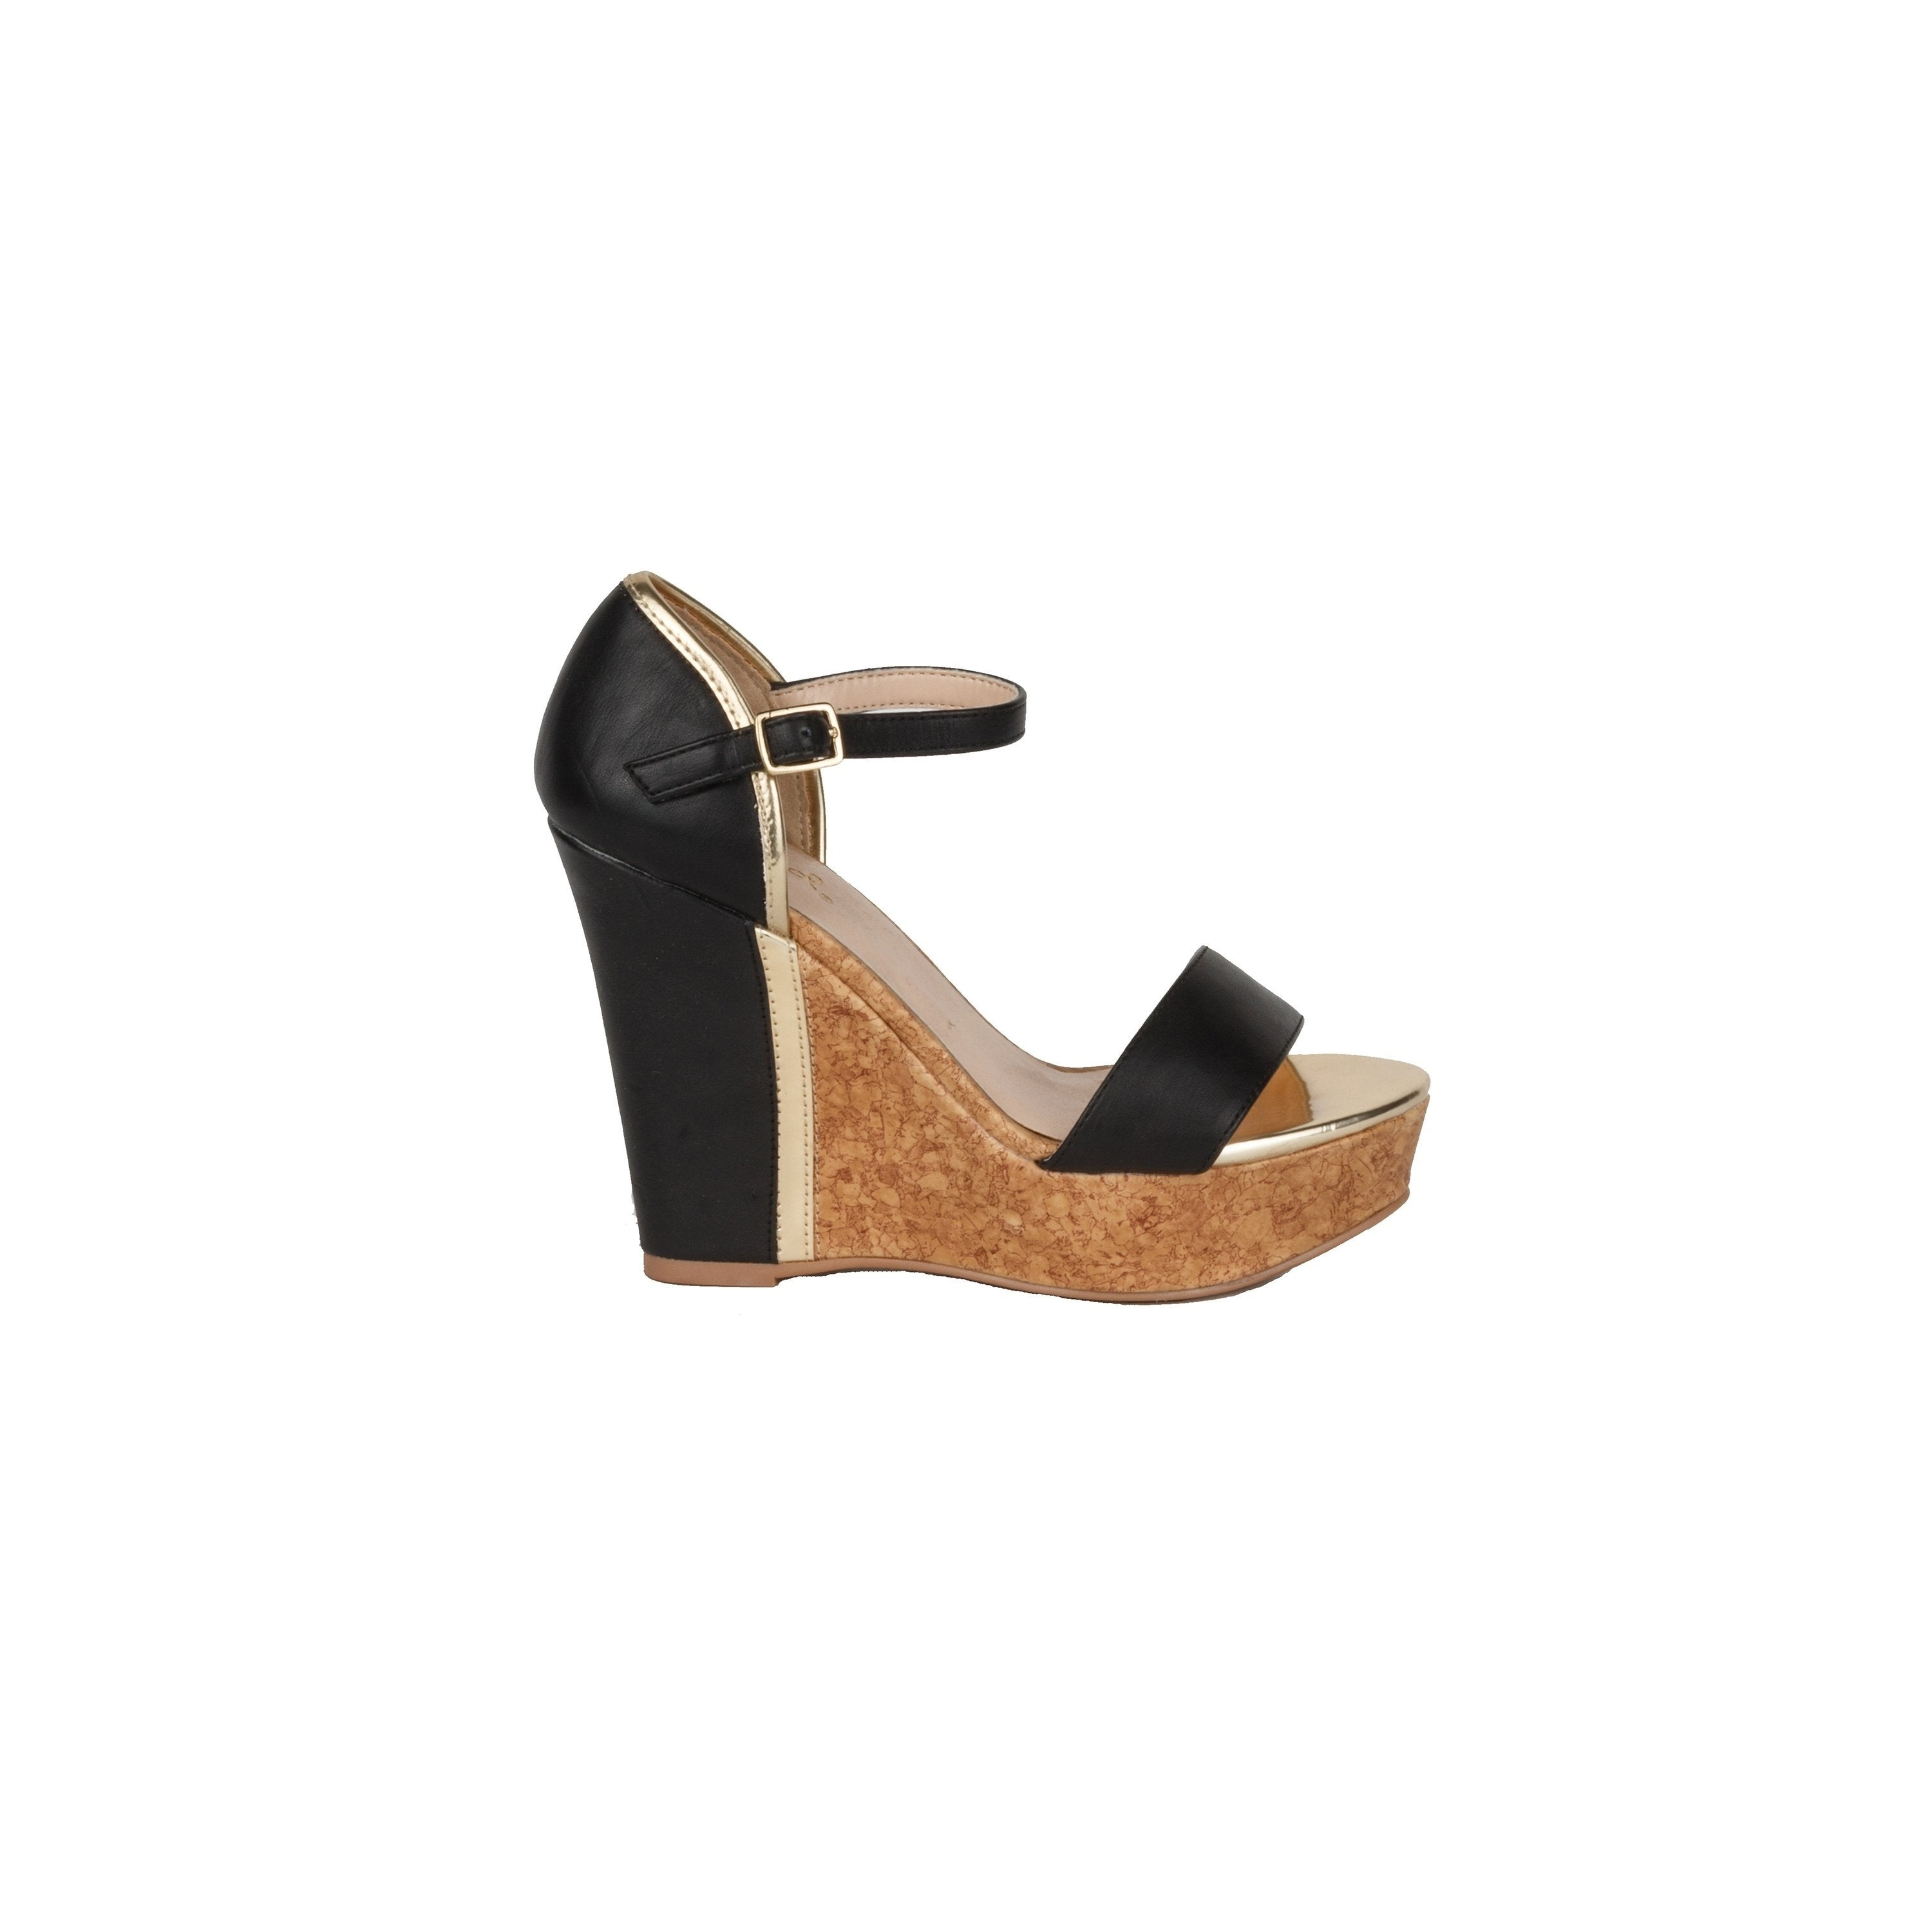 8df4132e859 Xehar Womens Ankle Strap High Heel Wedge Party Dress Open Toe Sandal - Free  Shipping On Orders Over  45 - Overstock.com - 26938786